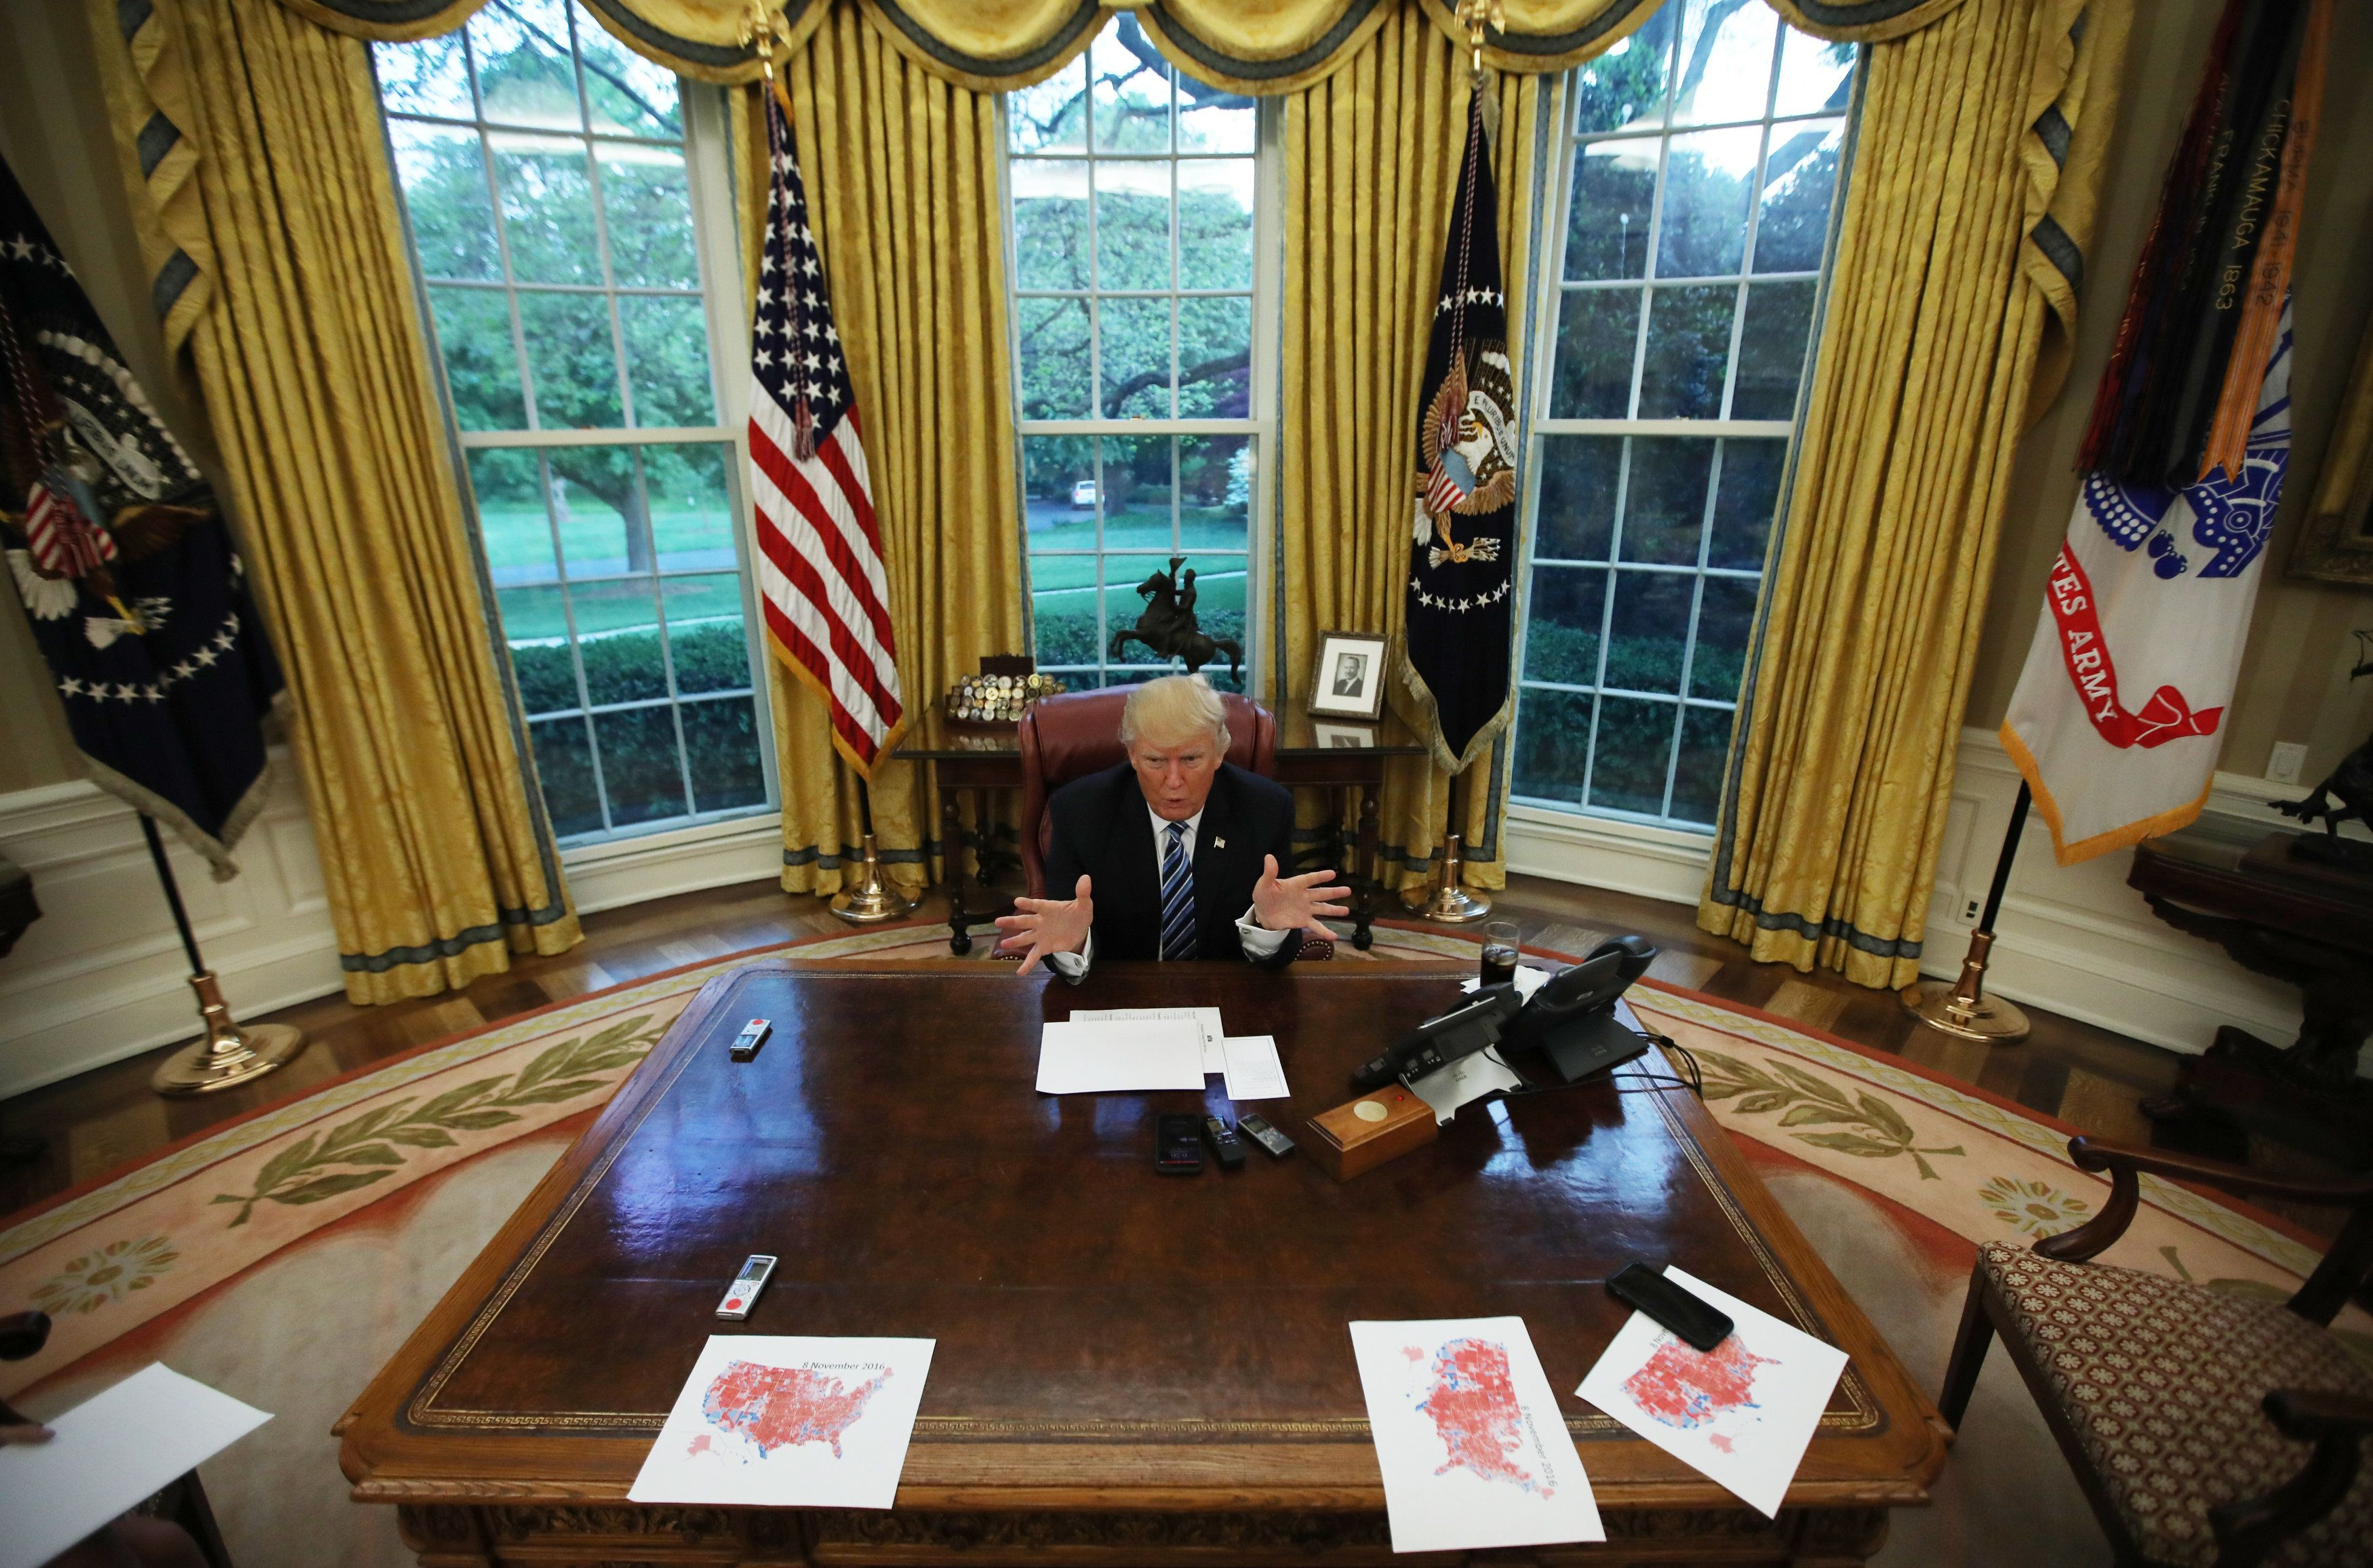 U.S. President Donald Trump speaks during an interview with Reuters in the Oval Office of the White House in Washington, U.S., April 27, 2017. REUTERS/Carlos Barria   TPX IMAGES OF THE DAY